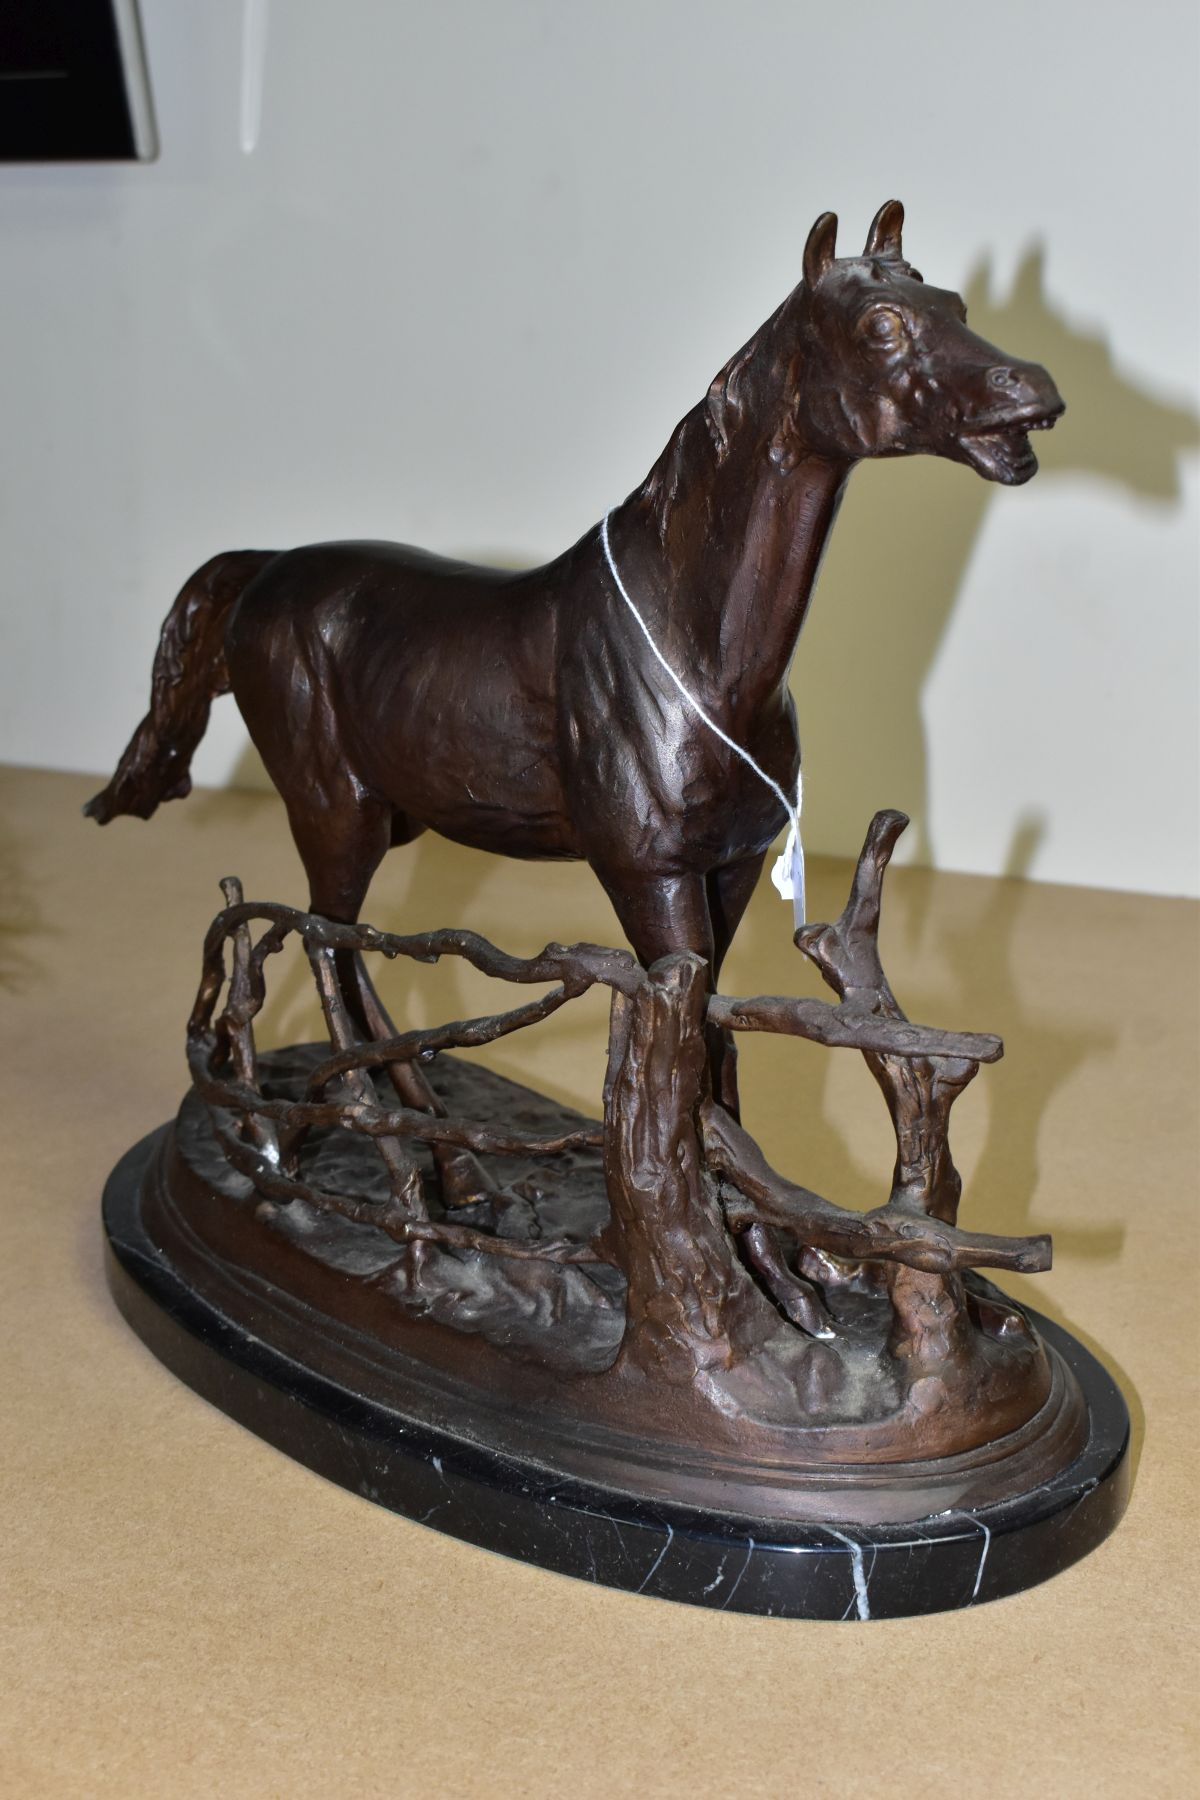 AFTER PIERRE JULES MENE 'A LA BARRIERE' a bronze sculpture of a horse beside a fence, bears a - Image 5 of 7